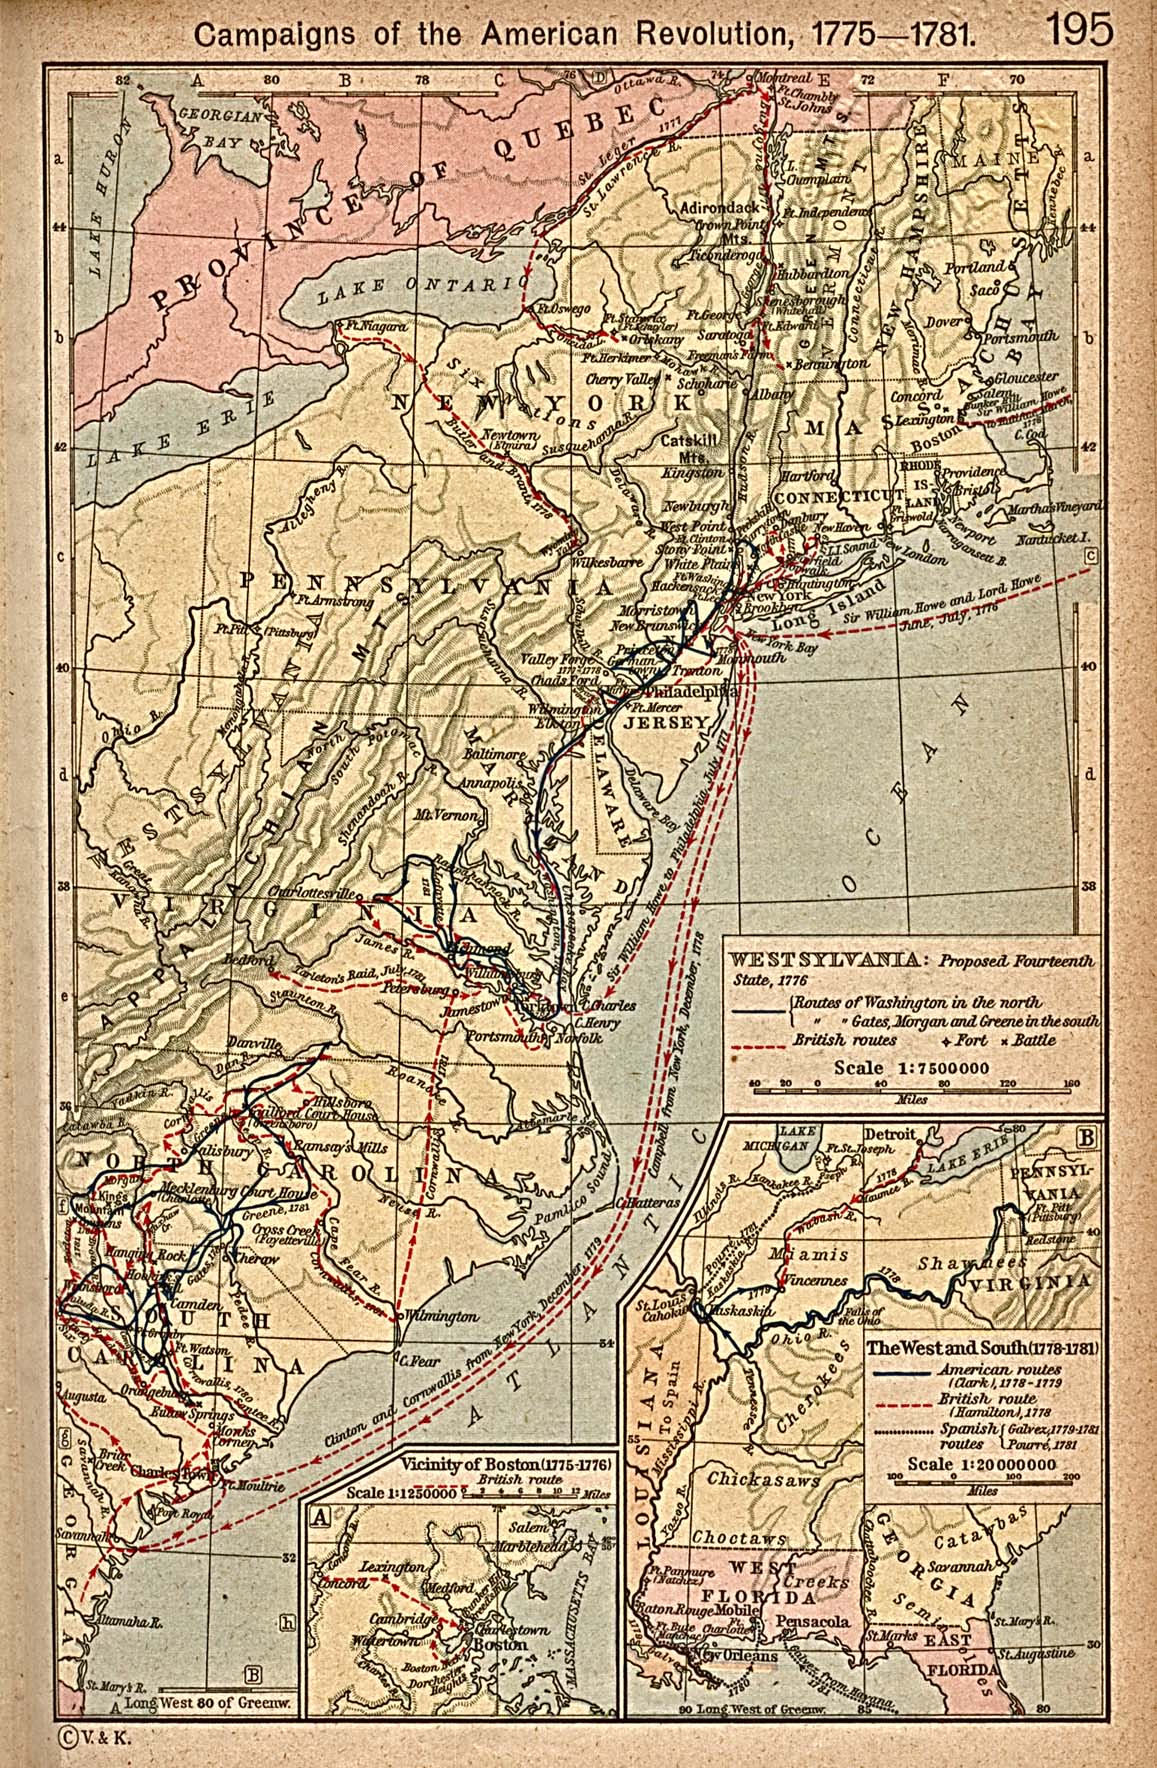 Map of campaigns of the American War for Independence